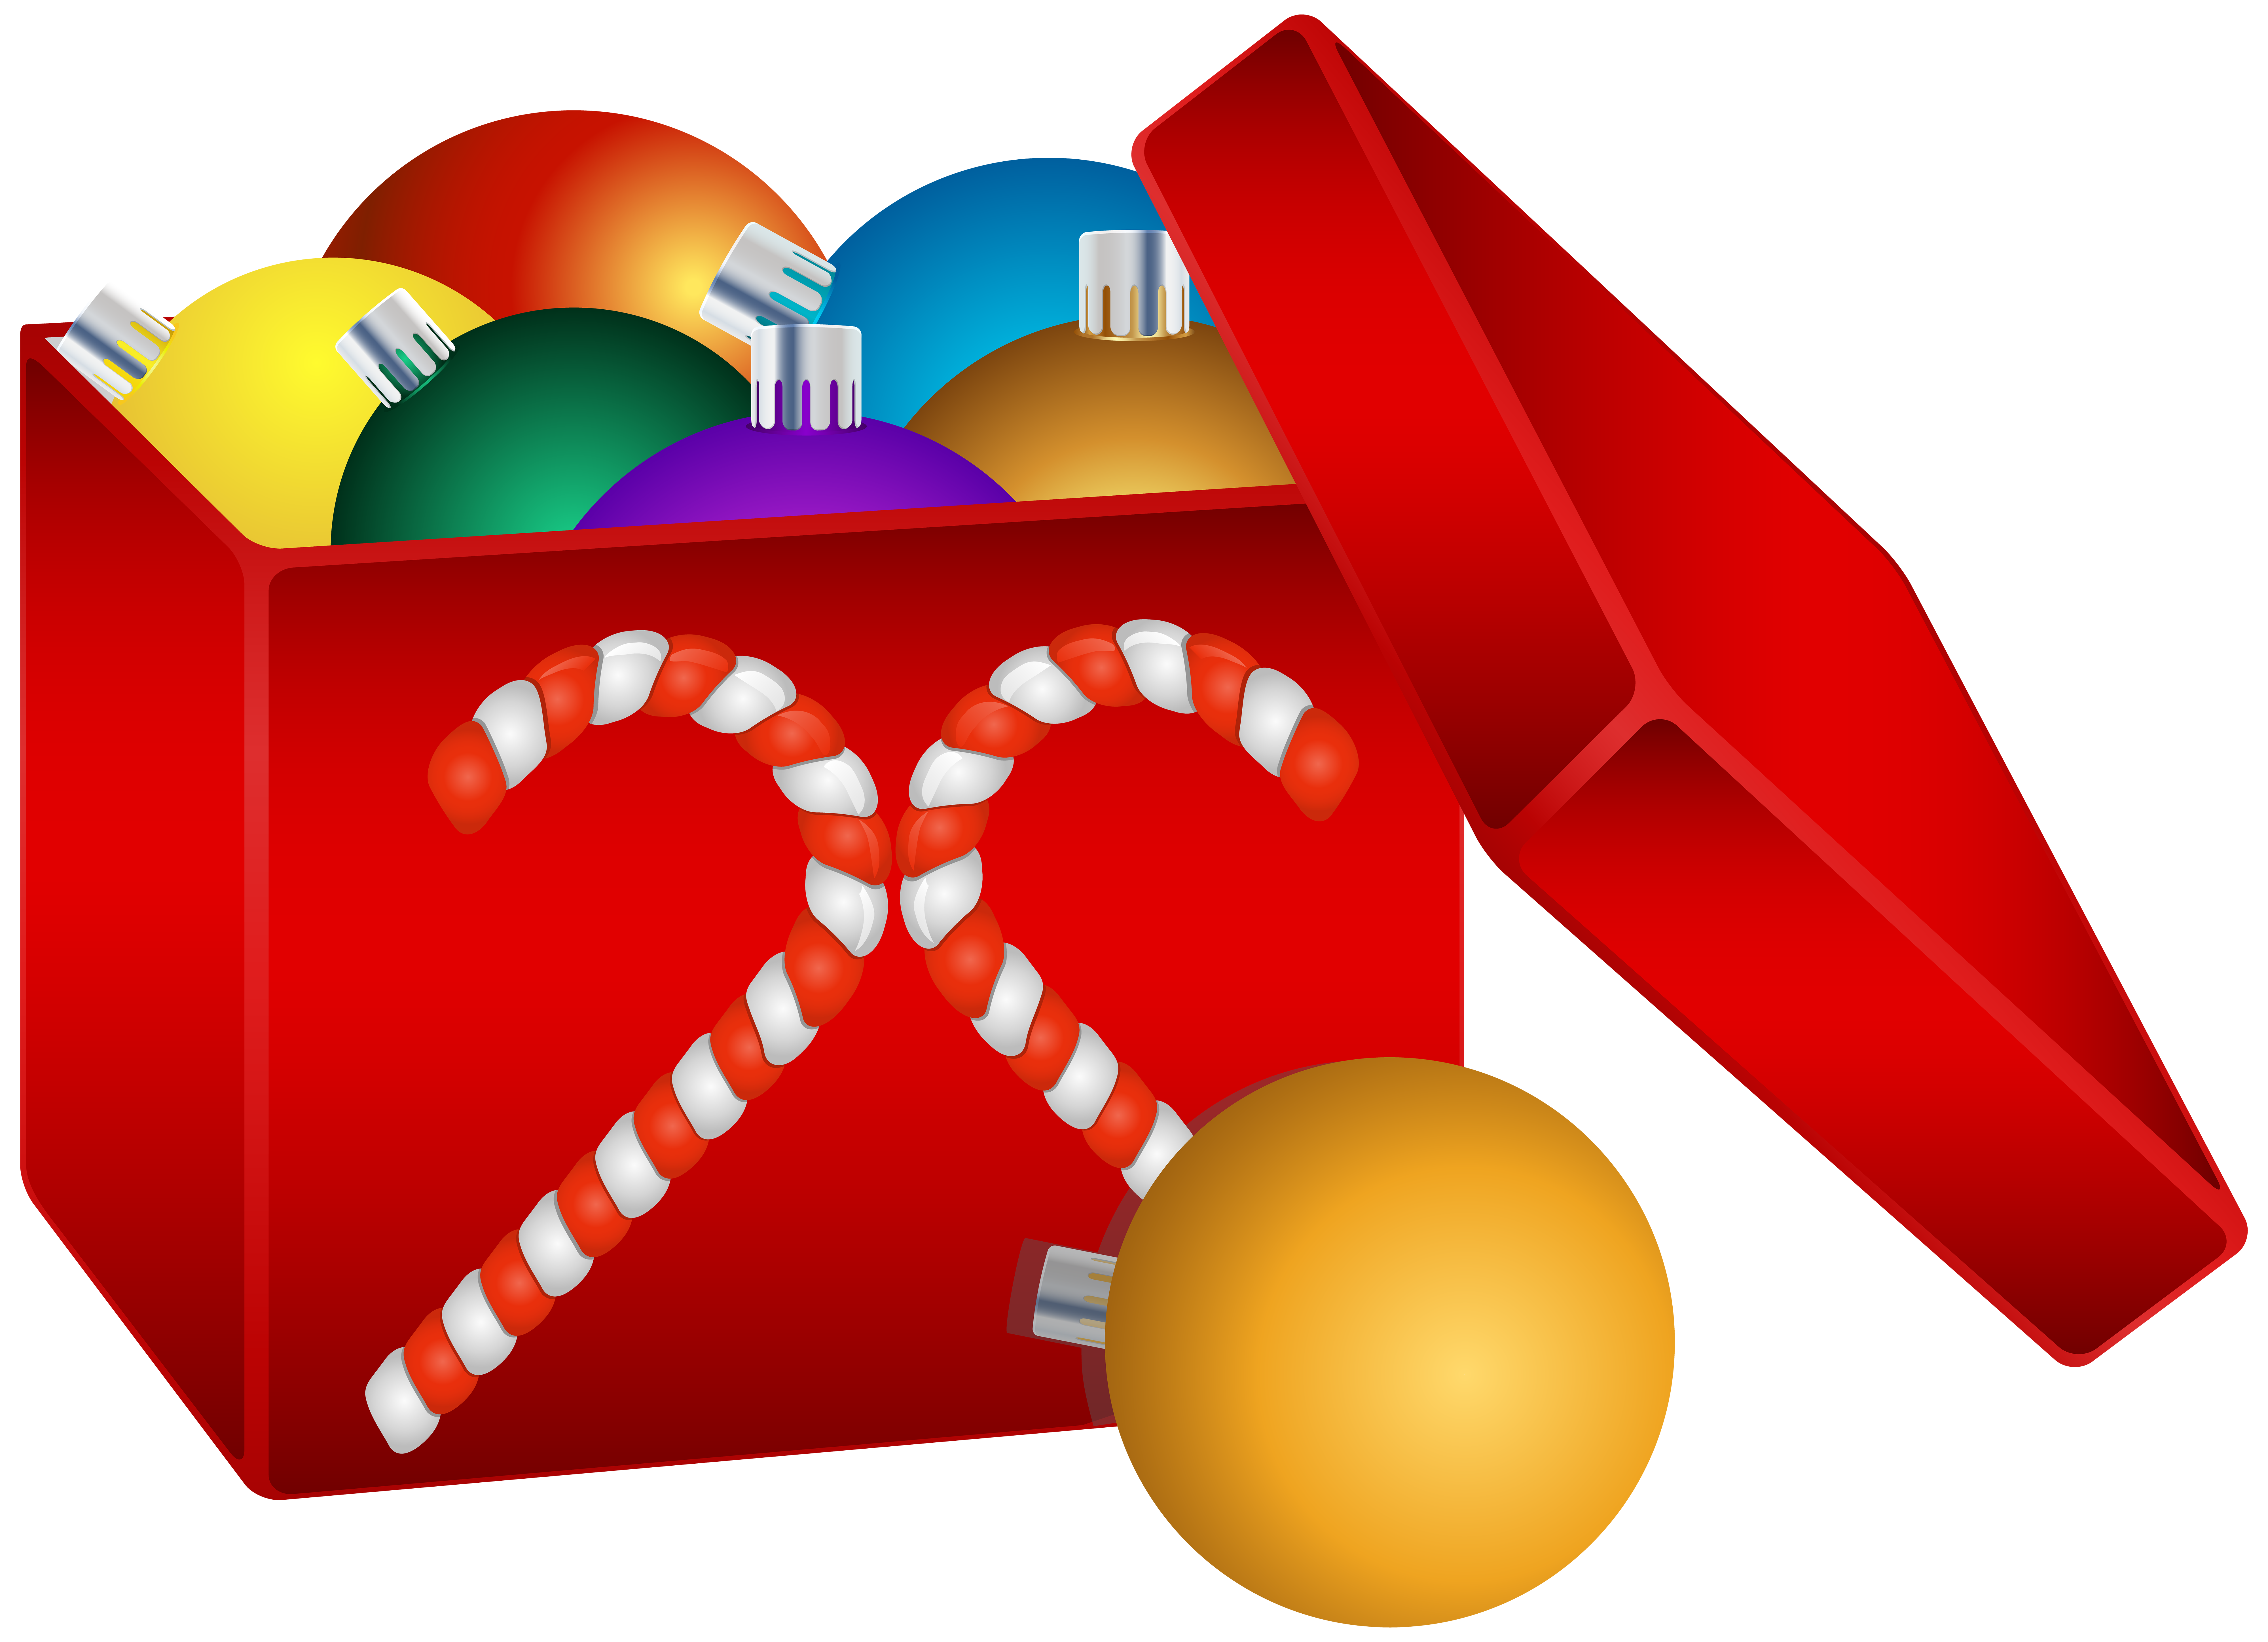 Christmas box clipart vector freeuse stock Christmas Balls in Box Transparent PNG Clip Art Image | Gallery ... vector freeuse stock